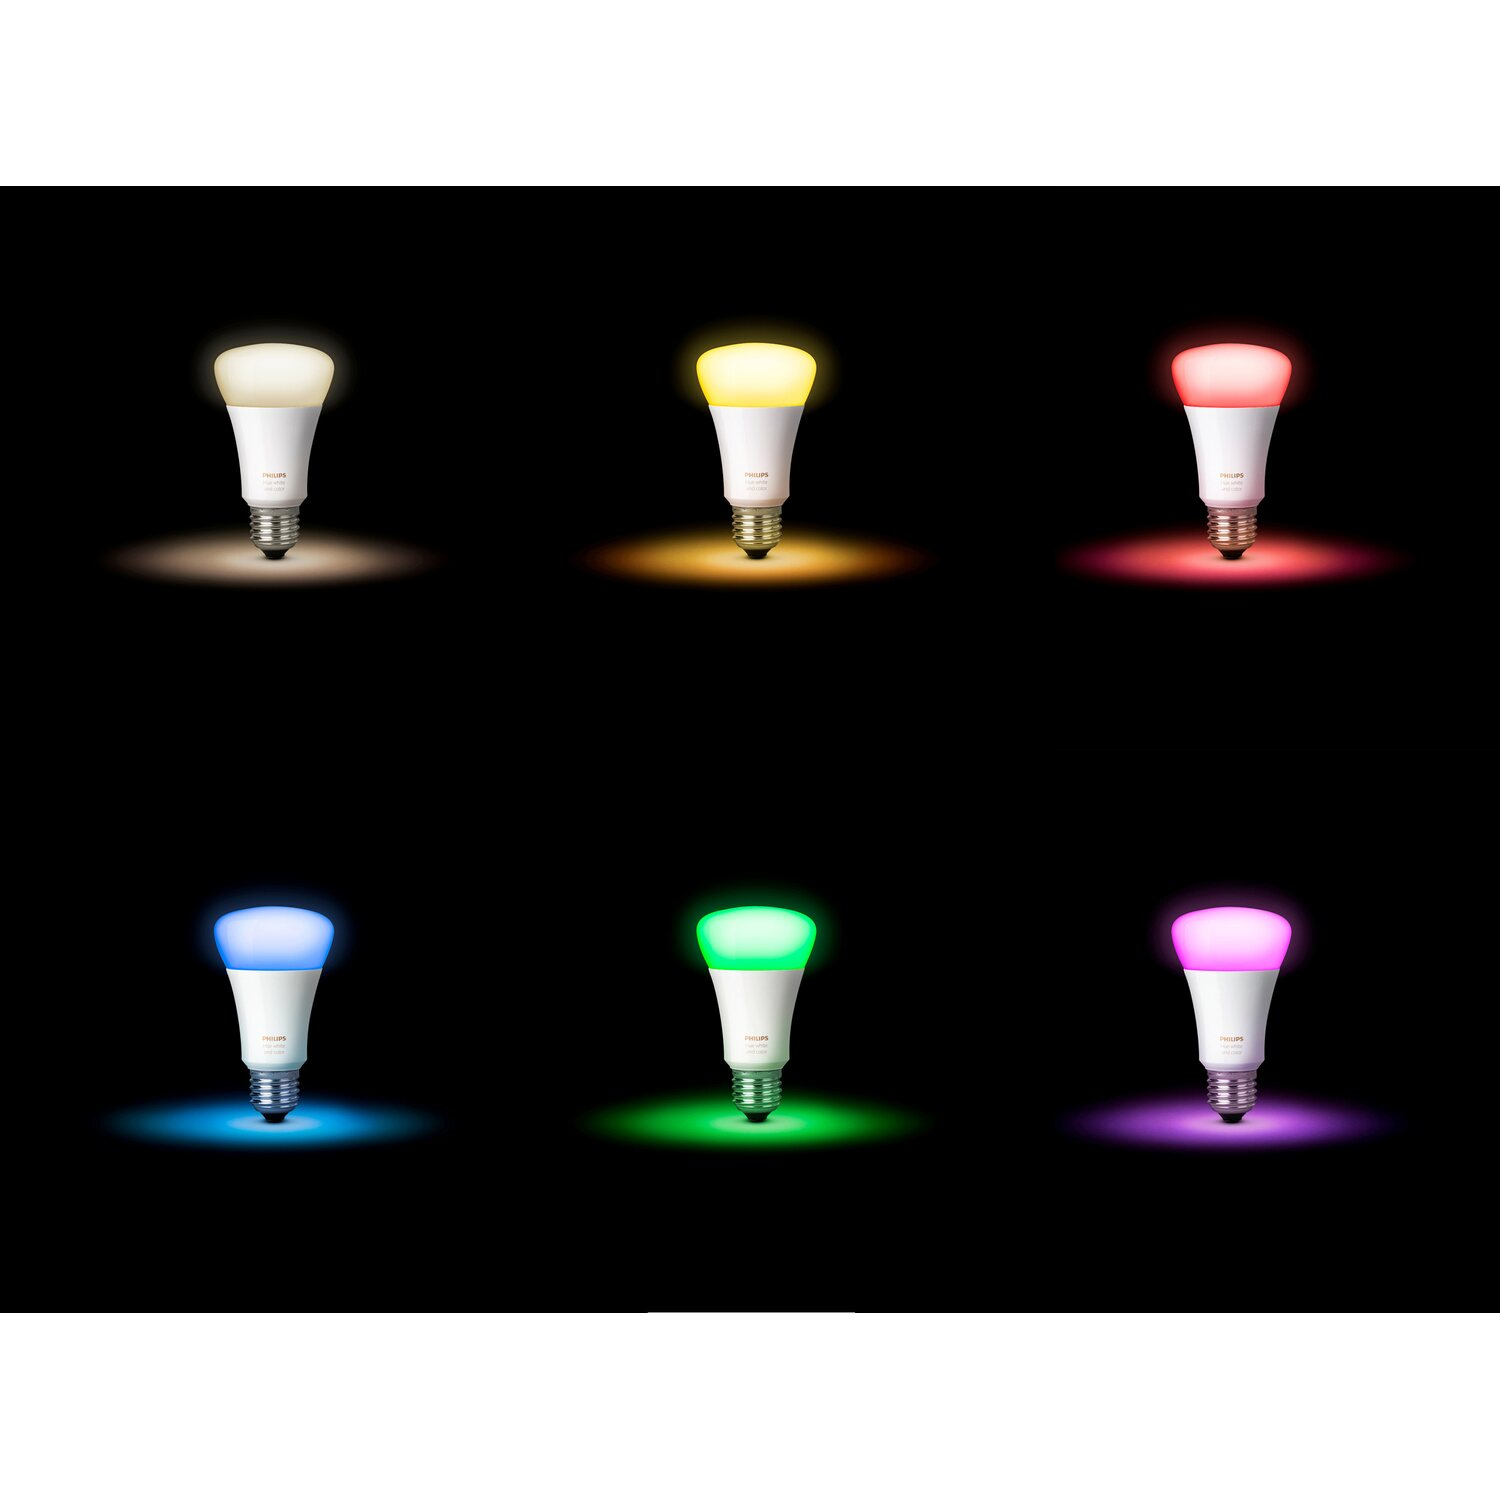 Philips Hue LED Lampe E2710W Weiß&Mehrfarbig Color Ambience